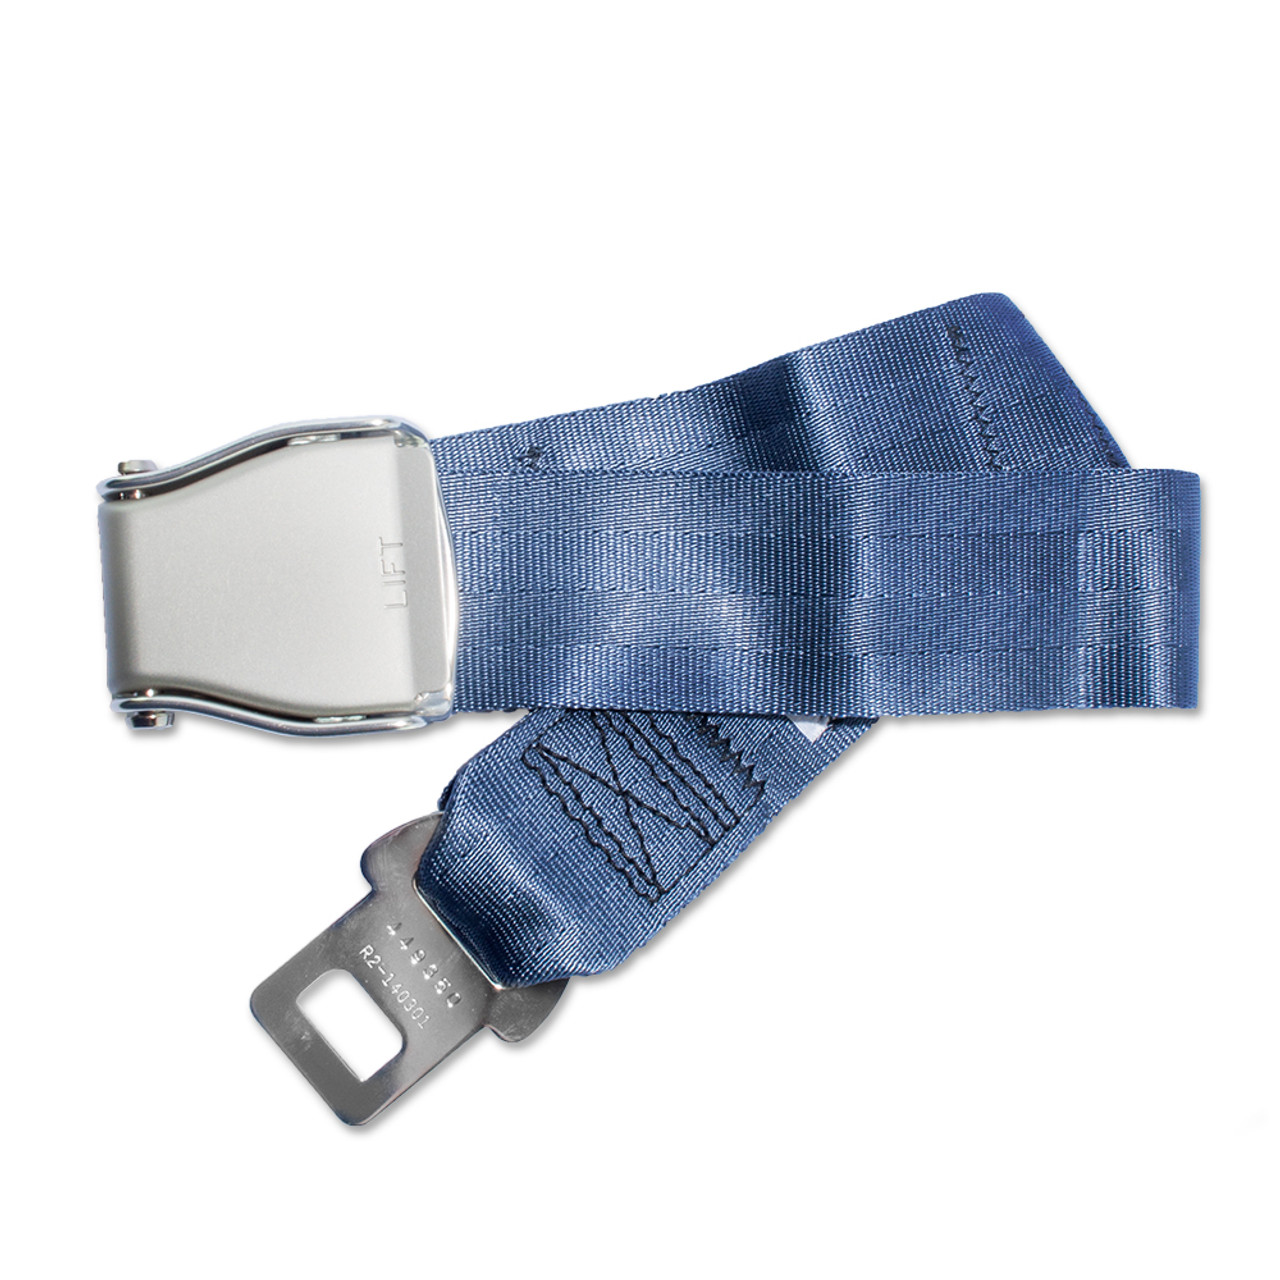 Airplane Seat Belt Extender for AMERICAN AIRLINES with Free Carry Case